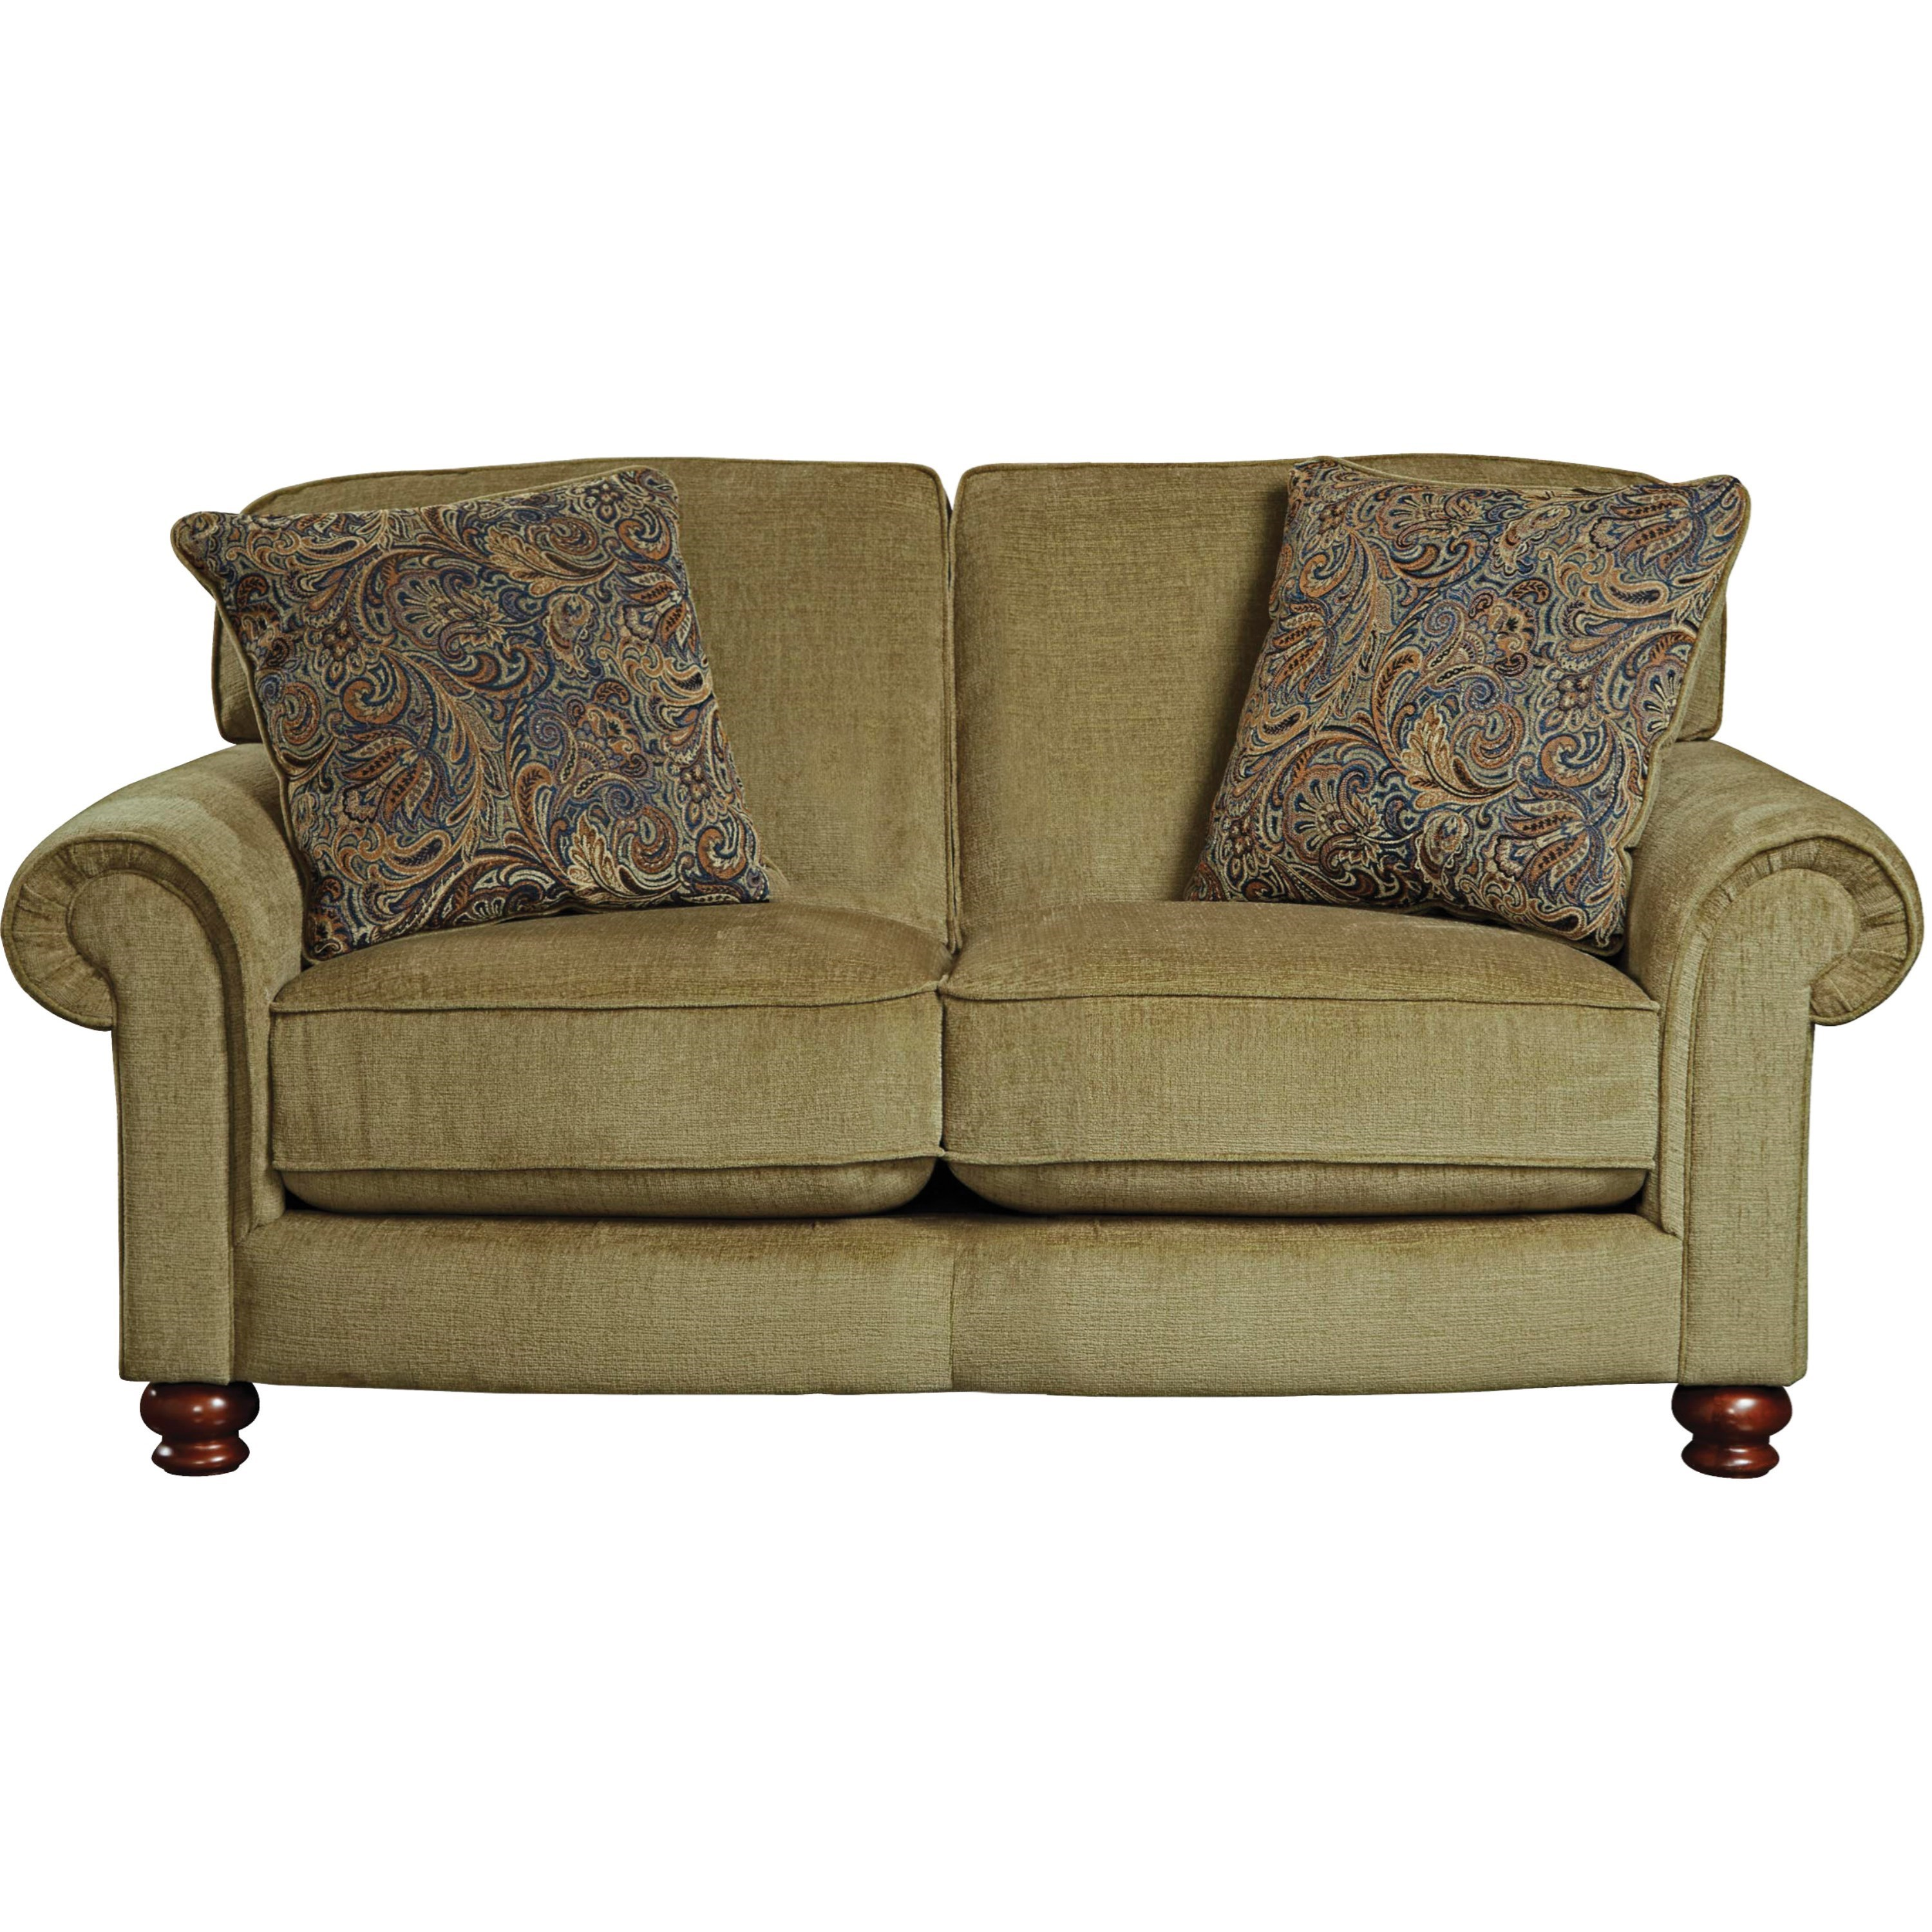 Jackson Furniture Downing Loveseat - Item Number: 4384-02-2906-35